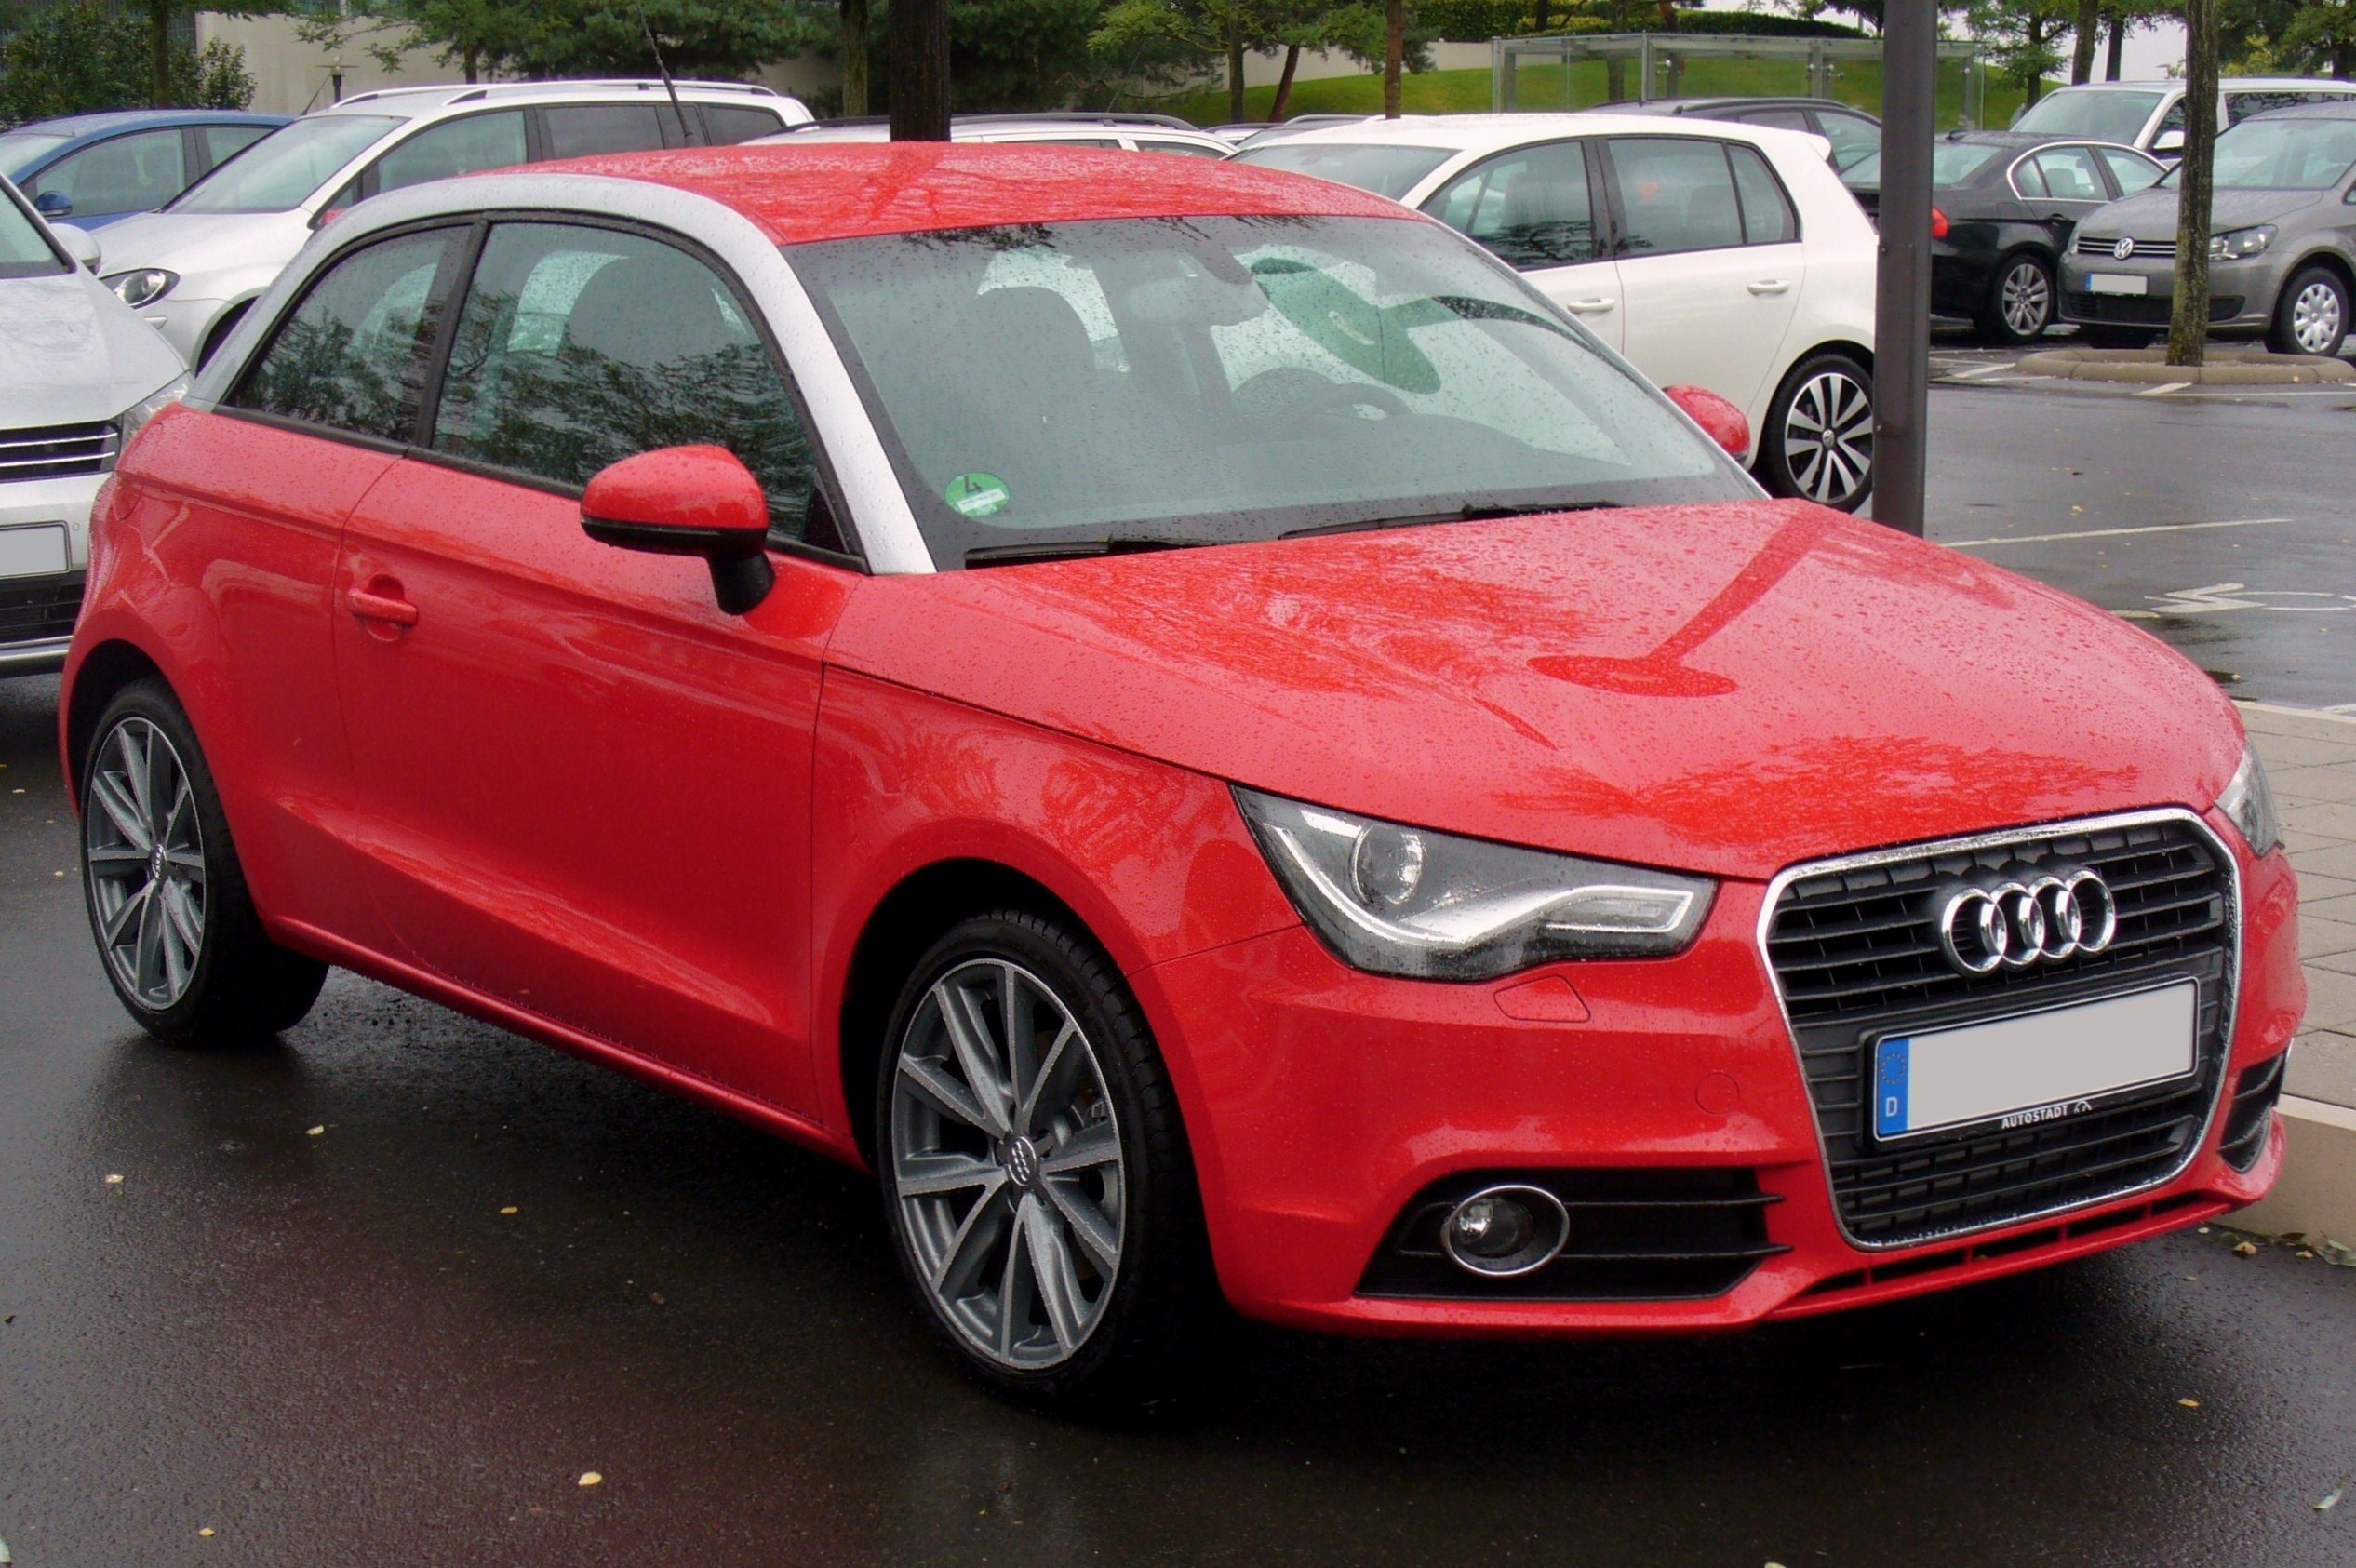 file audi a1 1 6 tdi ambition misanorot jpg wikimedia. Black Bedroom Furniture Sets. Home Design Ideas